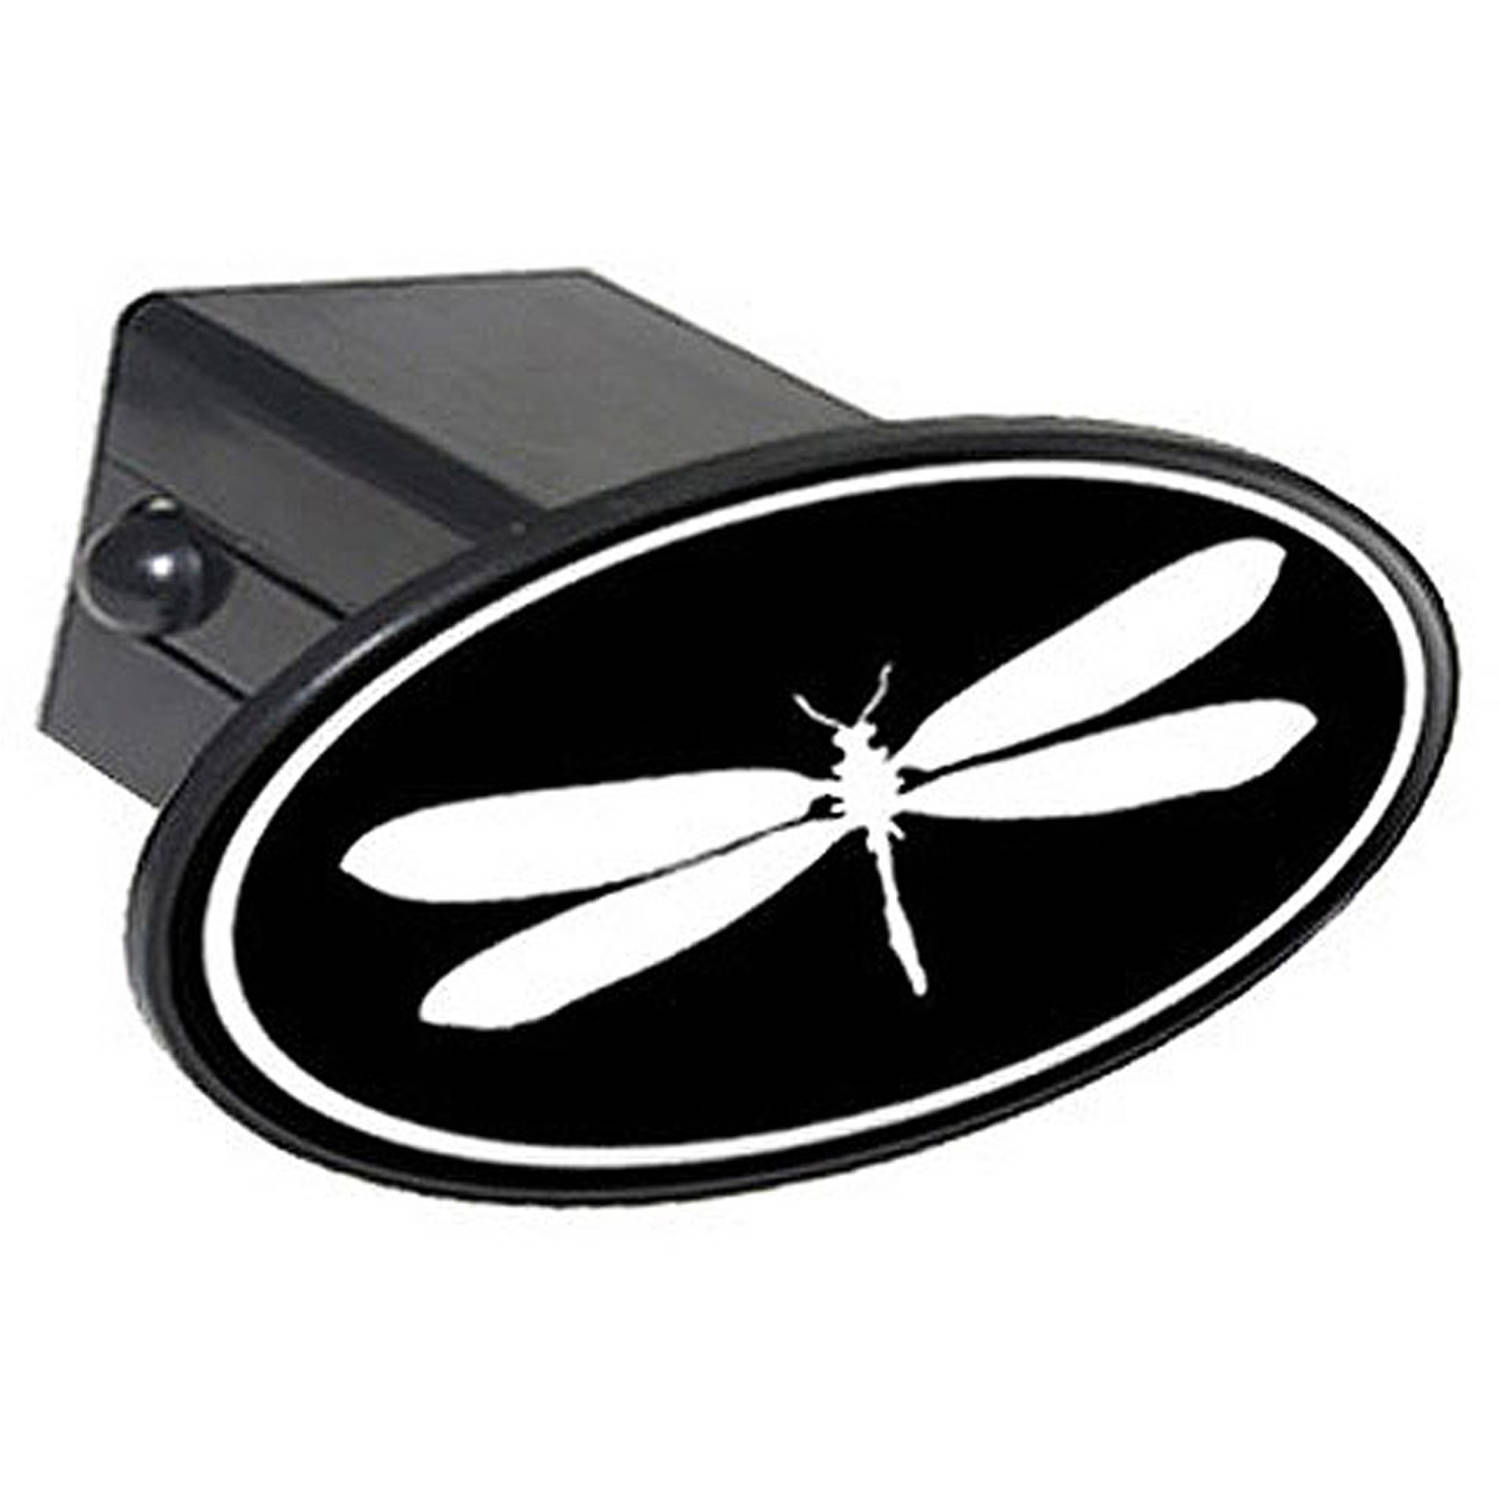 "Dragonfly White On Black 2"" Oval Tow Trailer Hitch Cover Plug Insert"